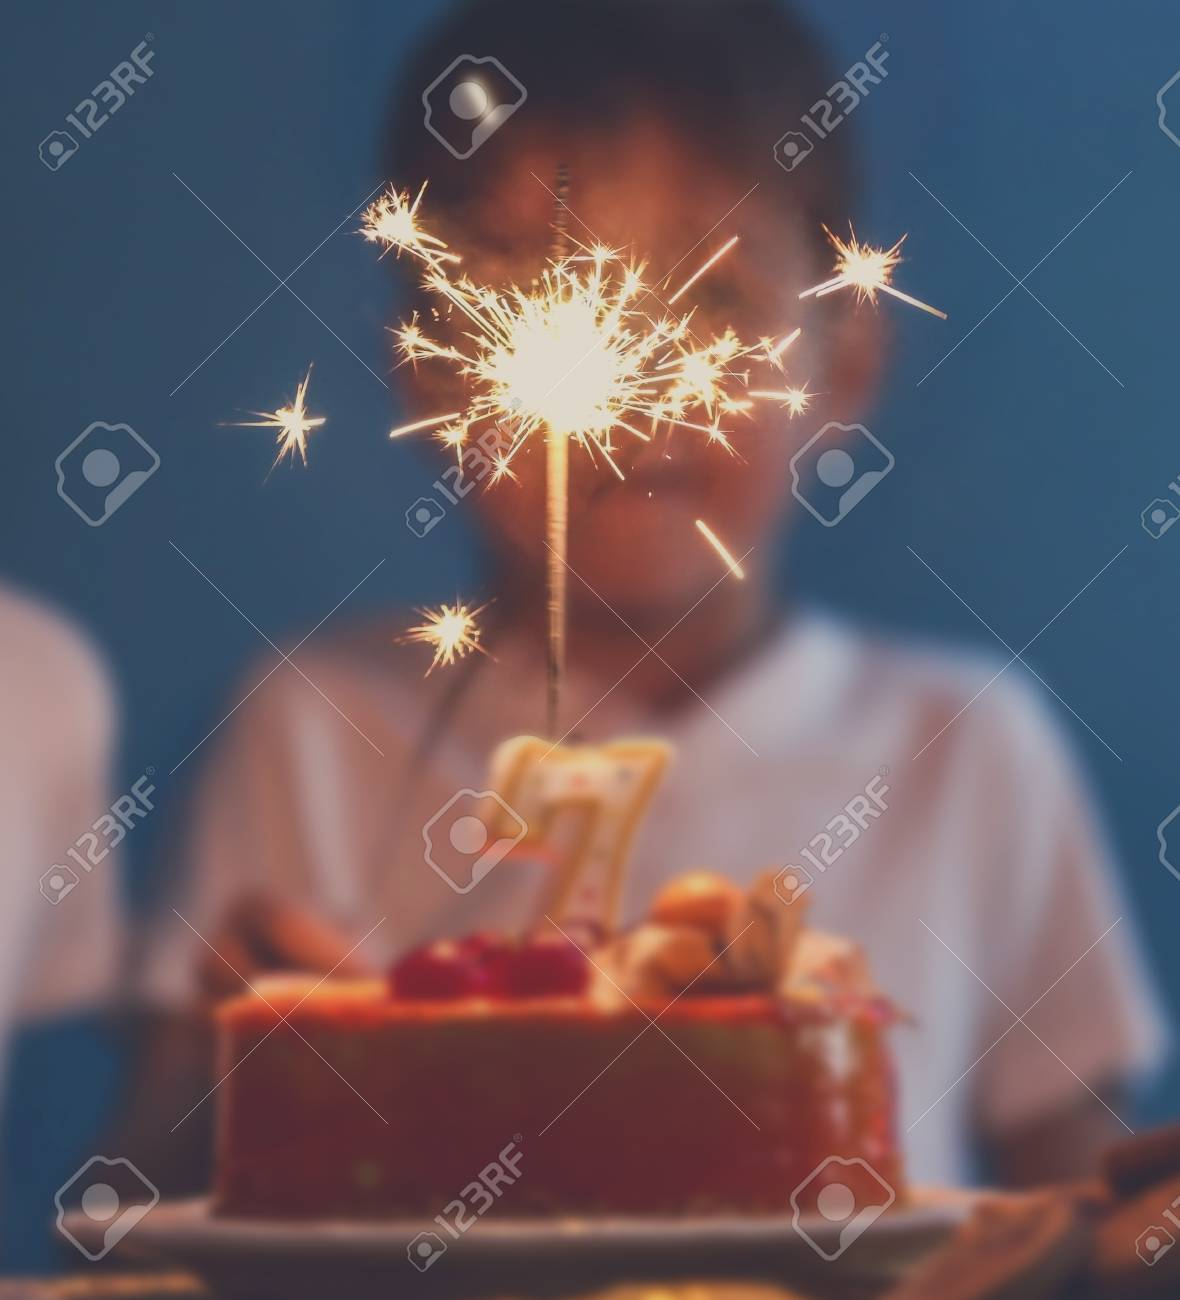 Cute Little Twins Blowing Out Sparkler On Birthday Cake At Party Stock Photo